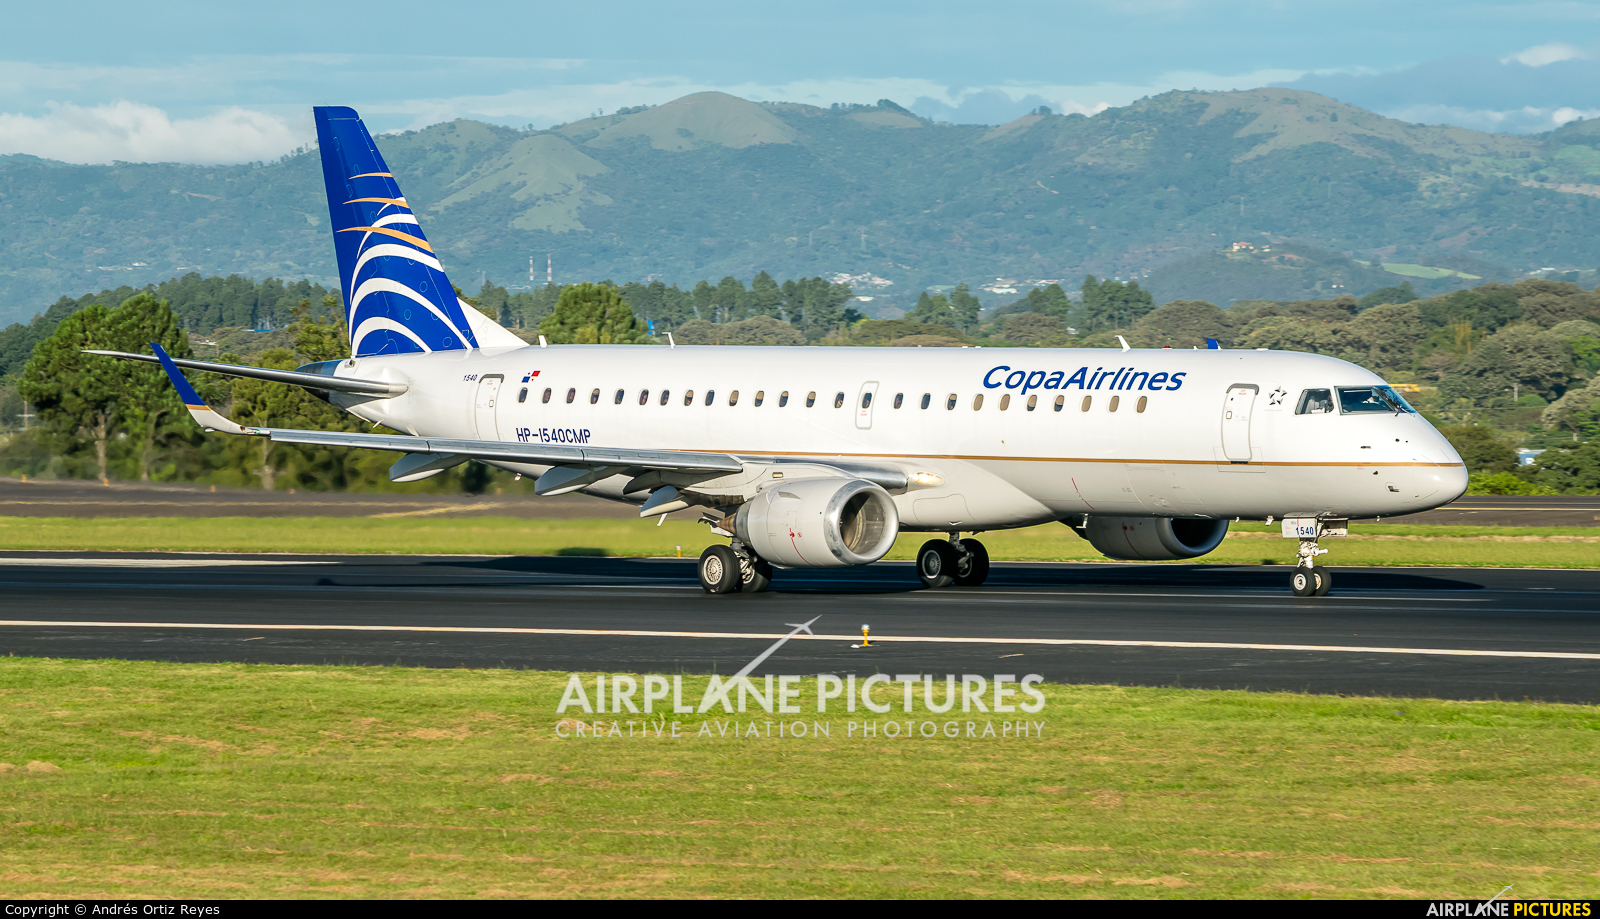 Copa Airlines HP-1540CMP aircraft at San Jose - Juan Santamaría Intl